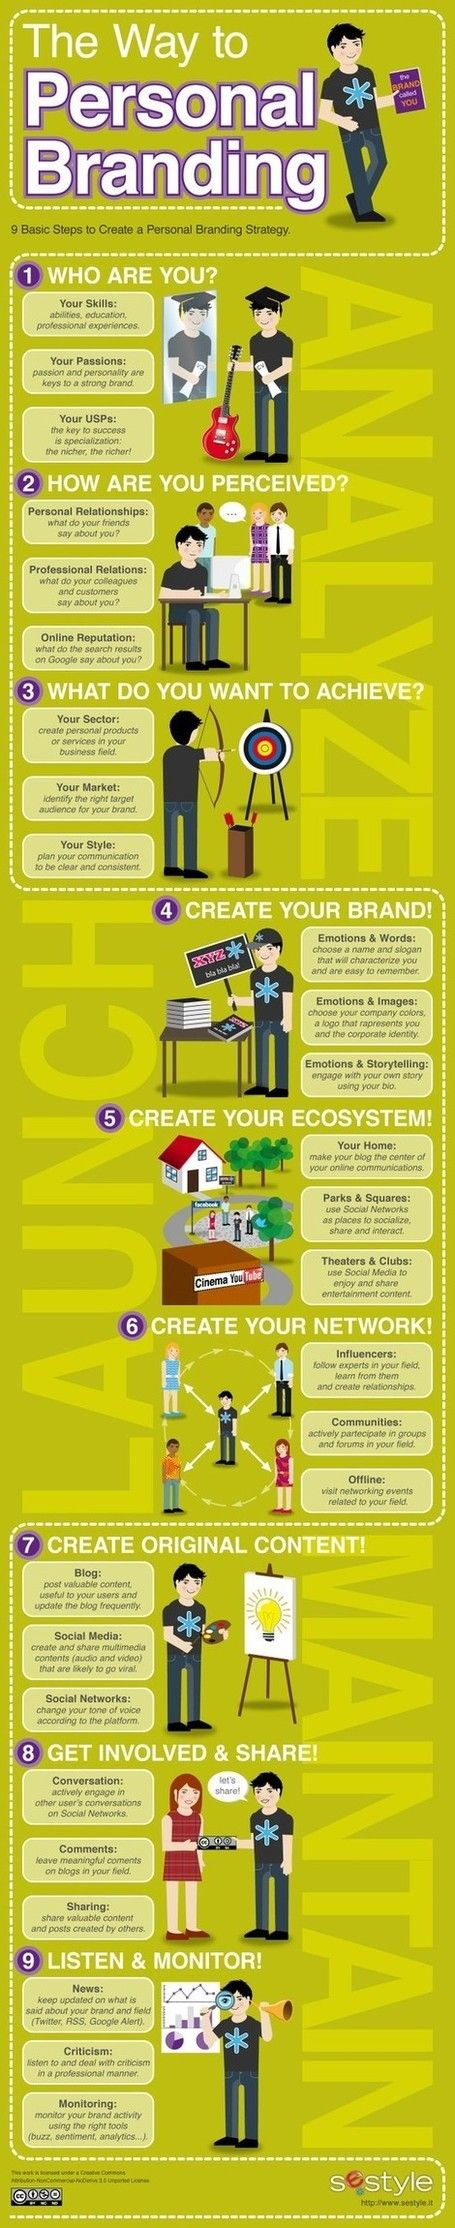 Personal Branding #Infographic. Creators need to create their brand to market their handmade creations -- a must! #roadshows